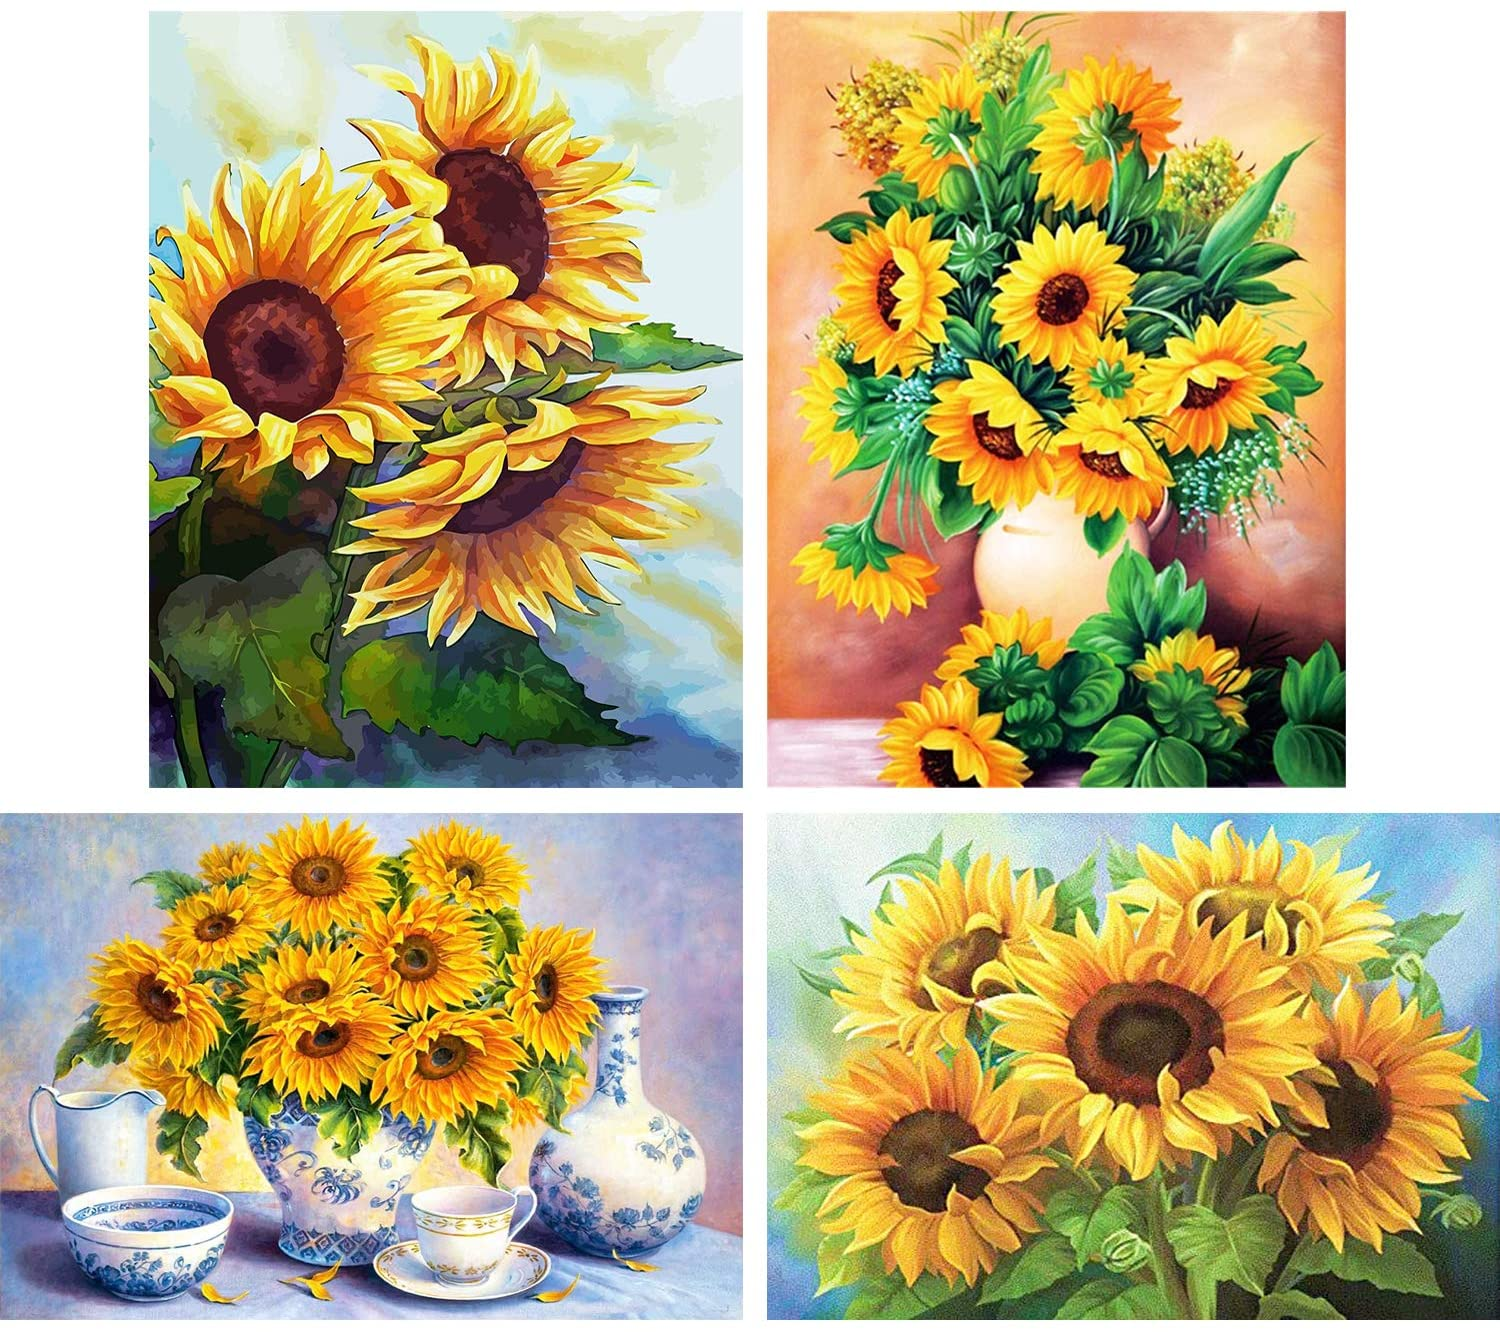 HaiMay 4 Pack DIY 5D Diamond Painting Kits for Adults Paint by Number Kits Full Drill Painting Diamond Pictures Arts Craft for Wall Decoration,Sunflower Style (10 x 14 inches)